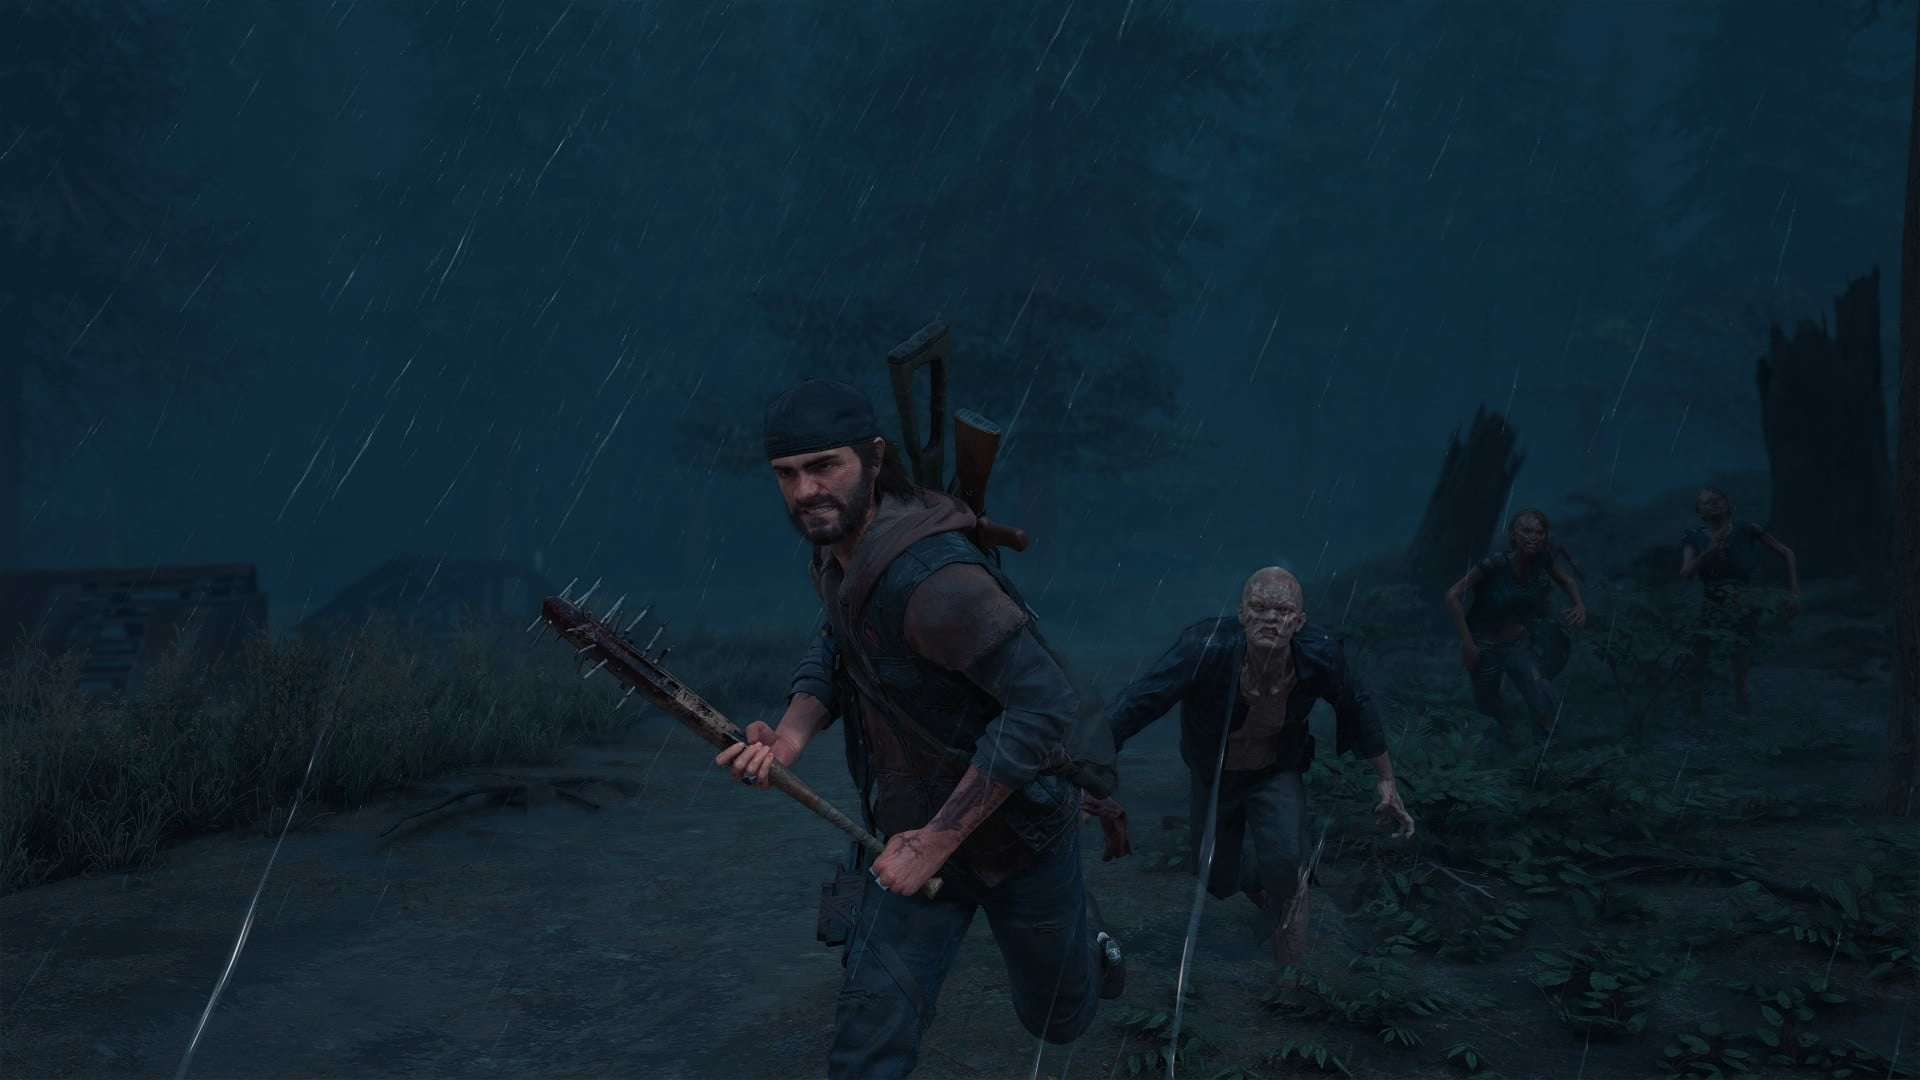 revision days gone ps4 20190421132421